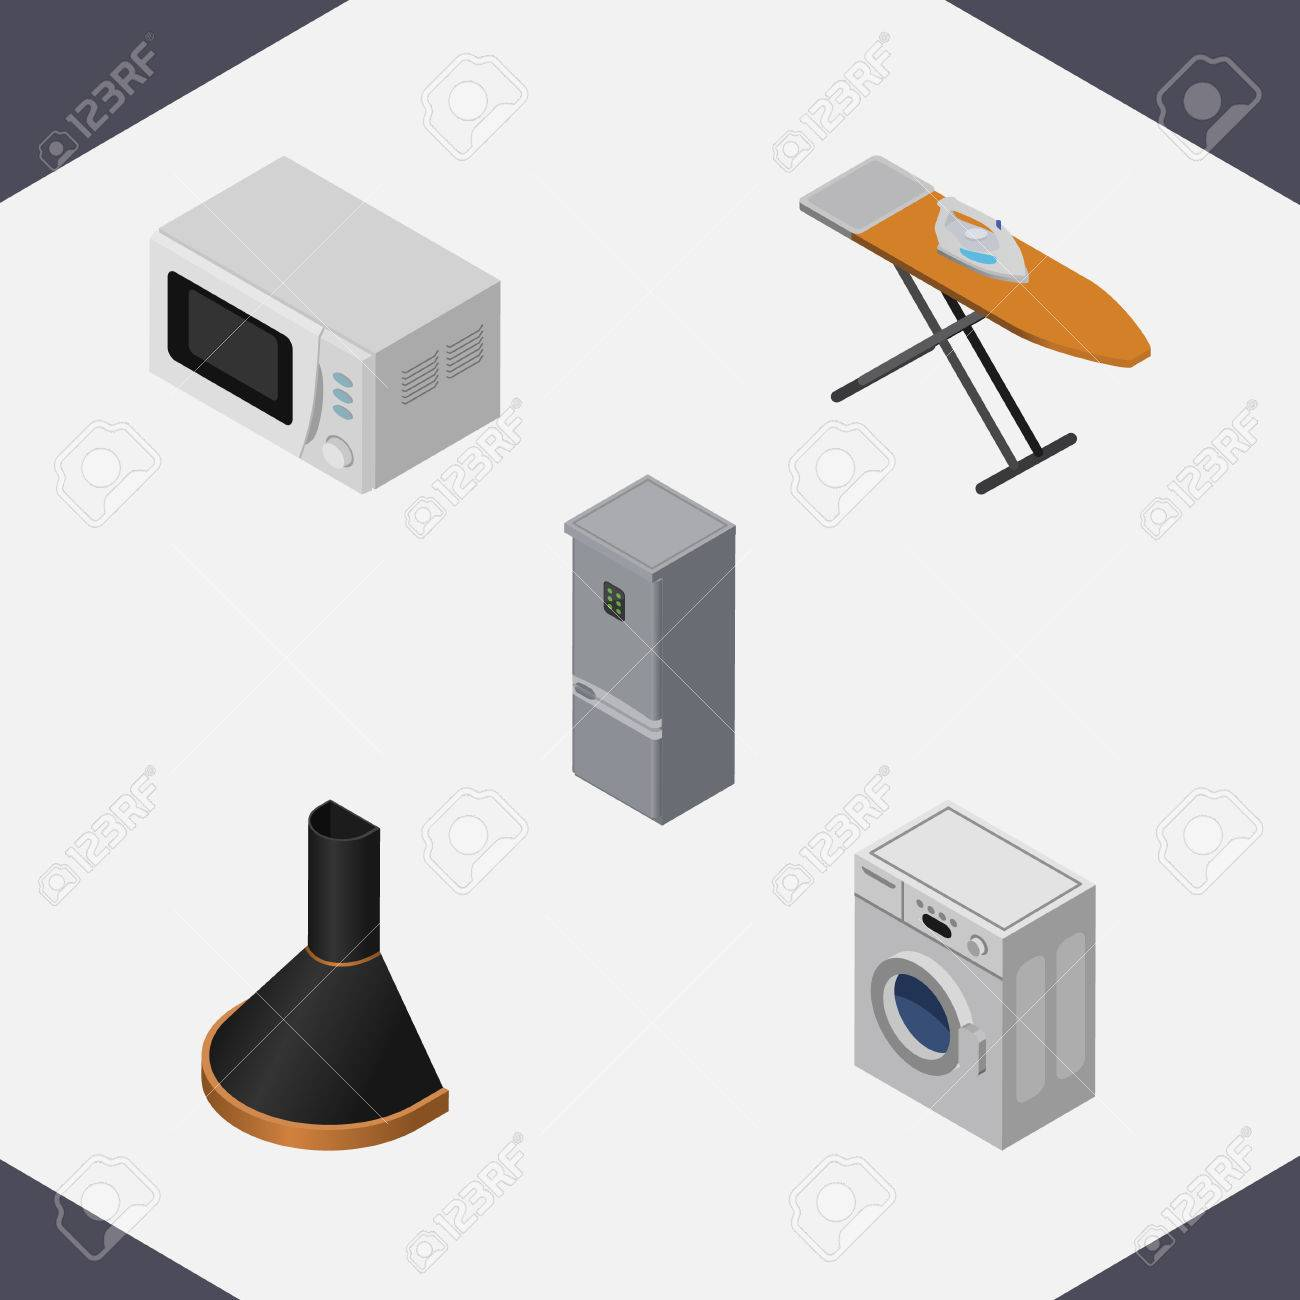 Full Size of Isometric Technology Set Of Kitchen Fridge, Air Extractor, Cloth Iron And Other Vector Objects. Also Includes Laundry, Hood, Stove Elements. Küche Abluftventilator Küche